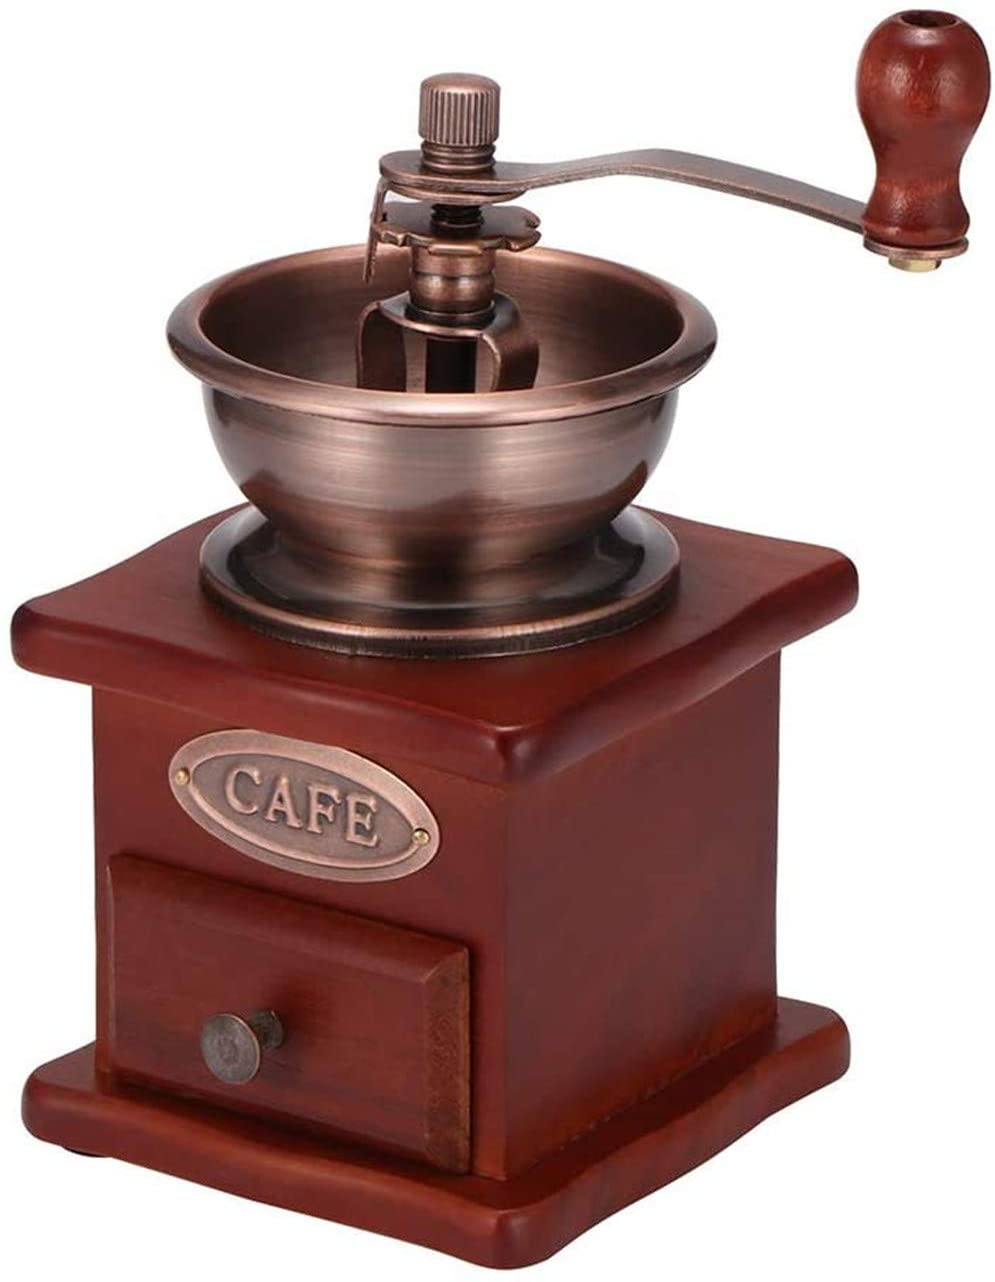 Wingsbro Manual Coffee Grinder Wood Vintage Antique Ceramic Hand Crank Coffee Mill With Adjustable Gear Setting Easy to clean